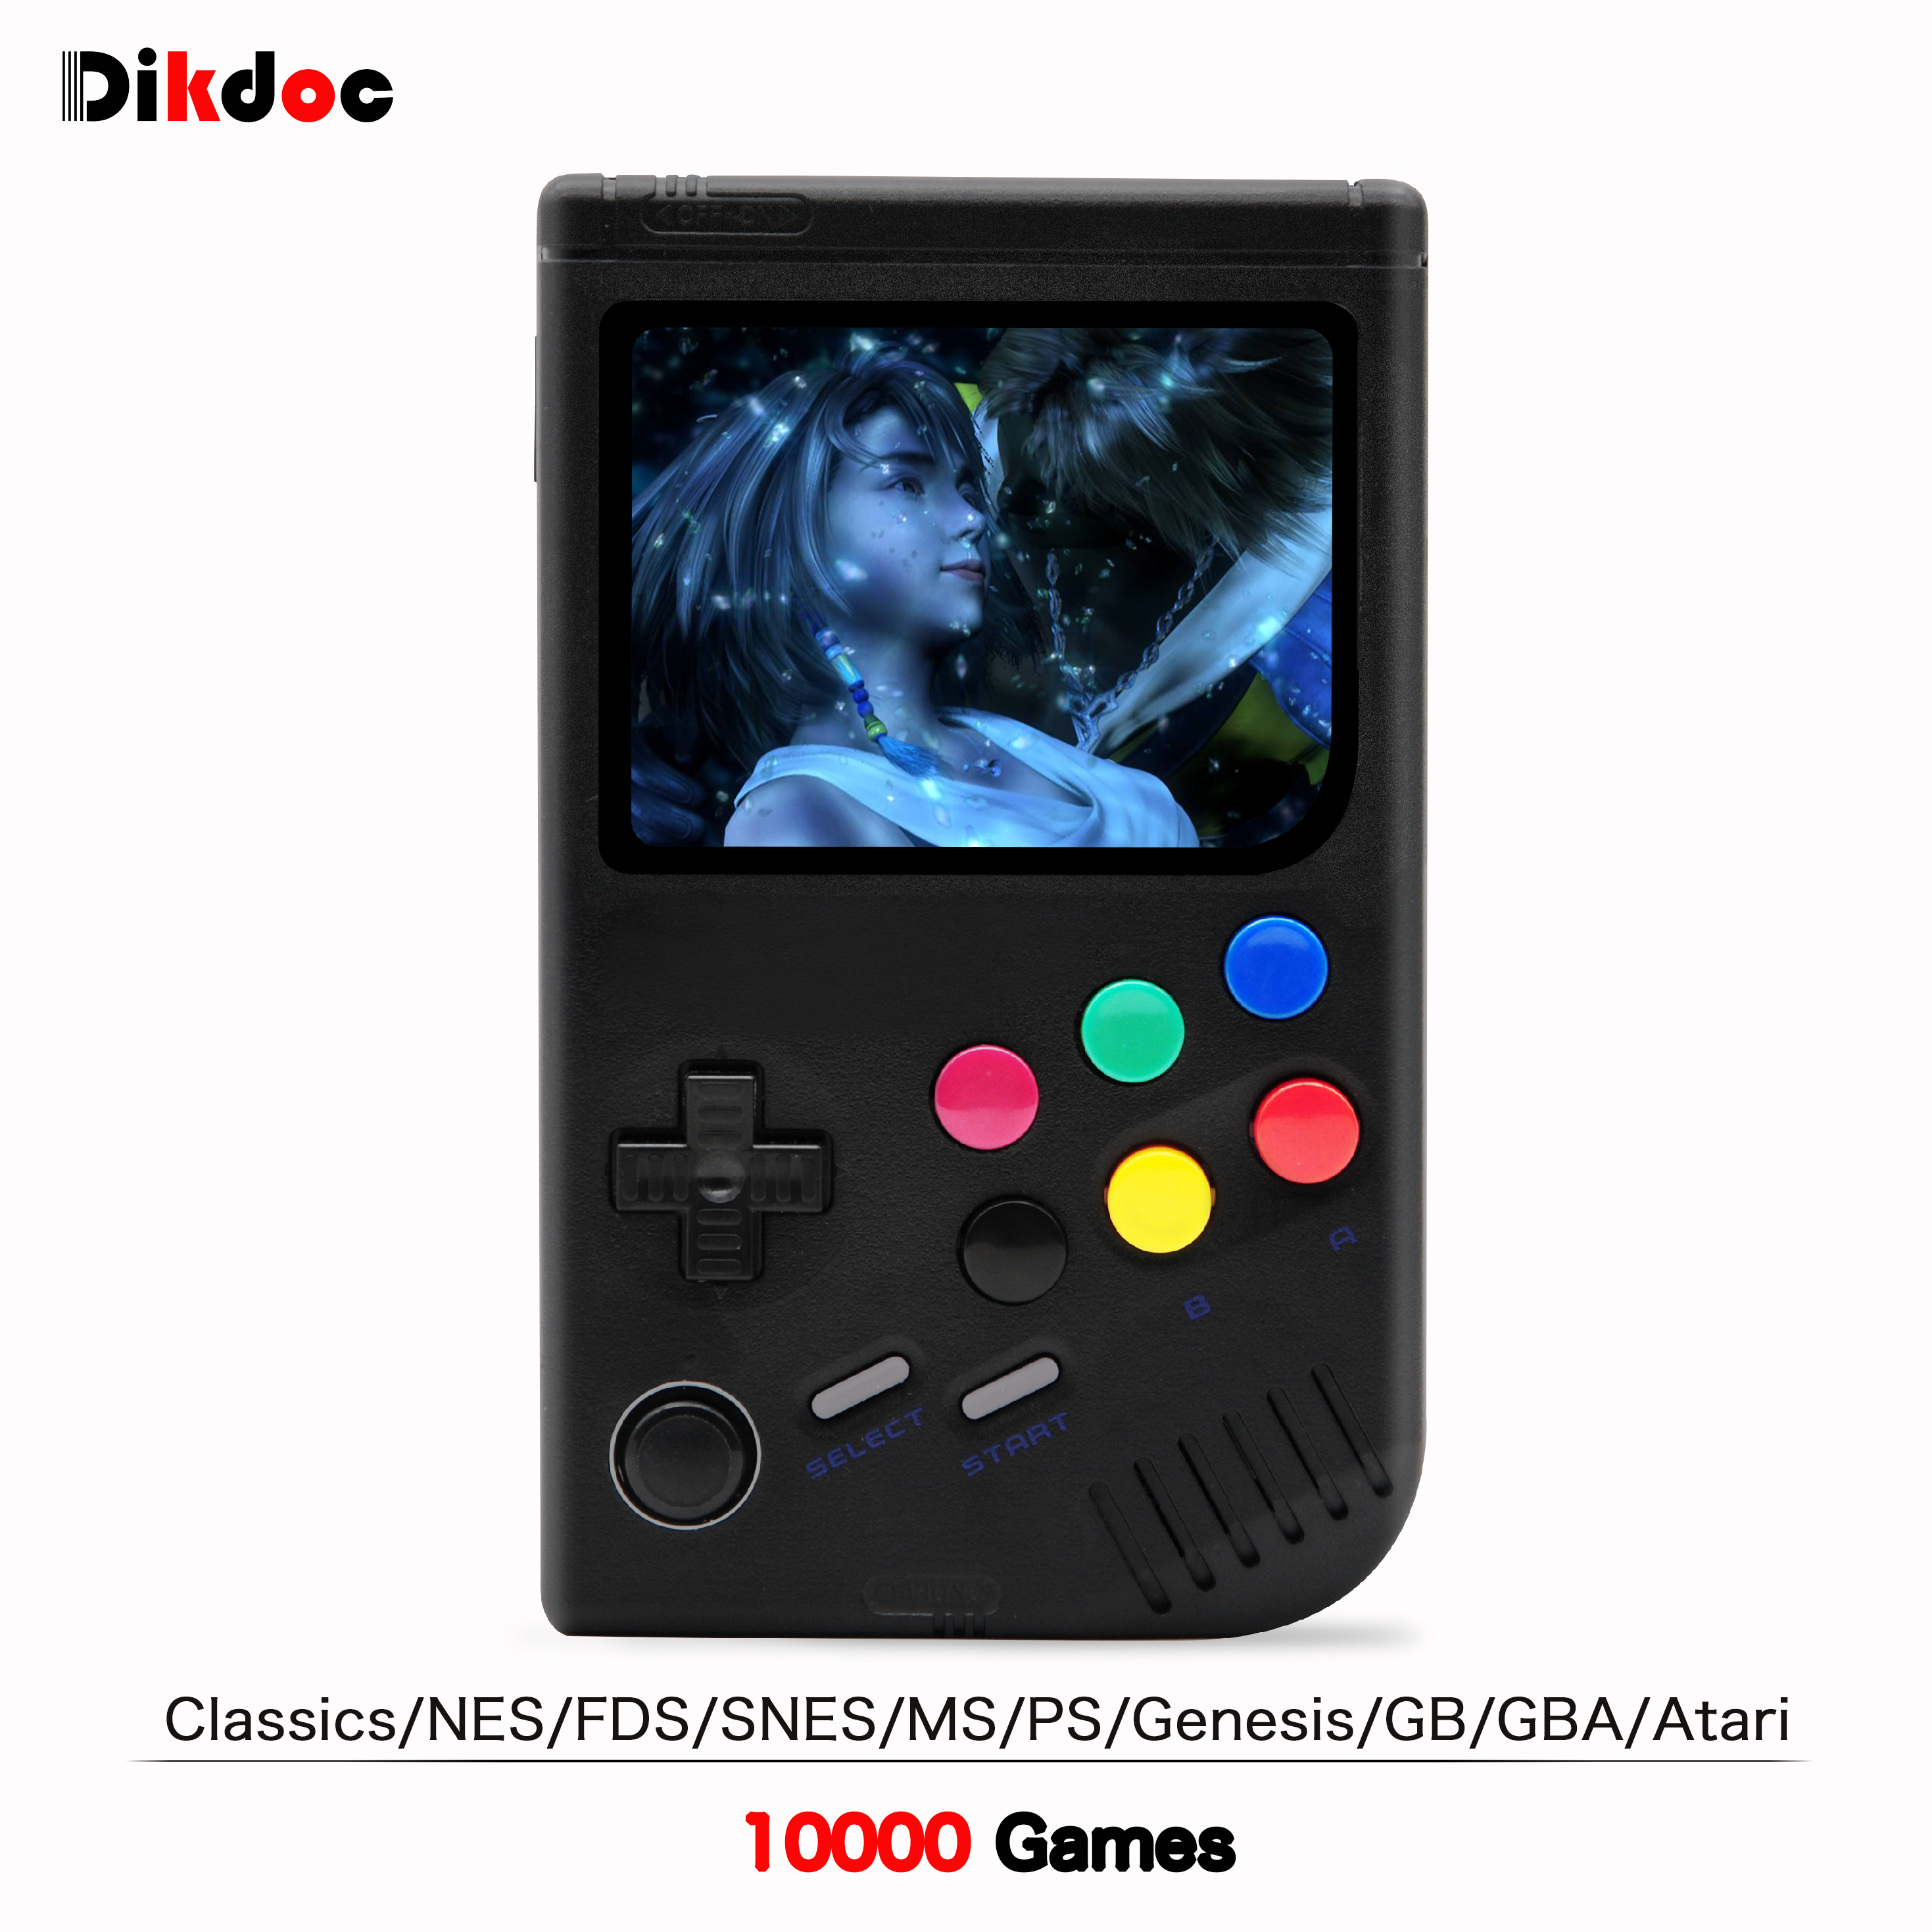 Dikdoc LCL Pi Retro Video Game Console Player Raspberry Pi 3B Handheld Game with 3.5 Inch IPS Screen Built in 10000 Games-in Handheld Game Players from Consumer Electronics    1